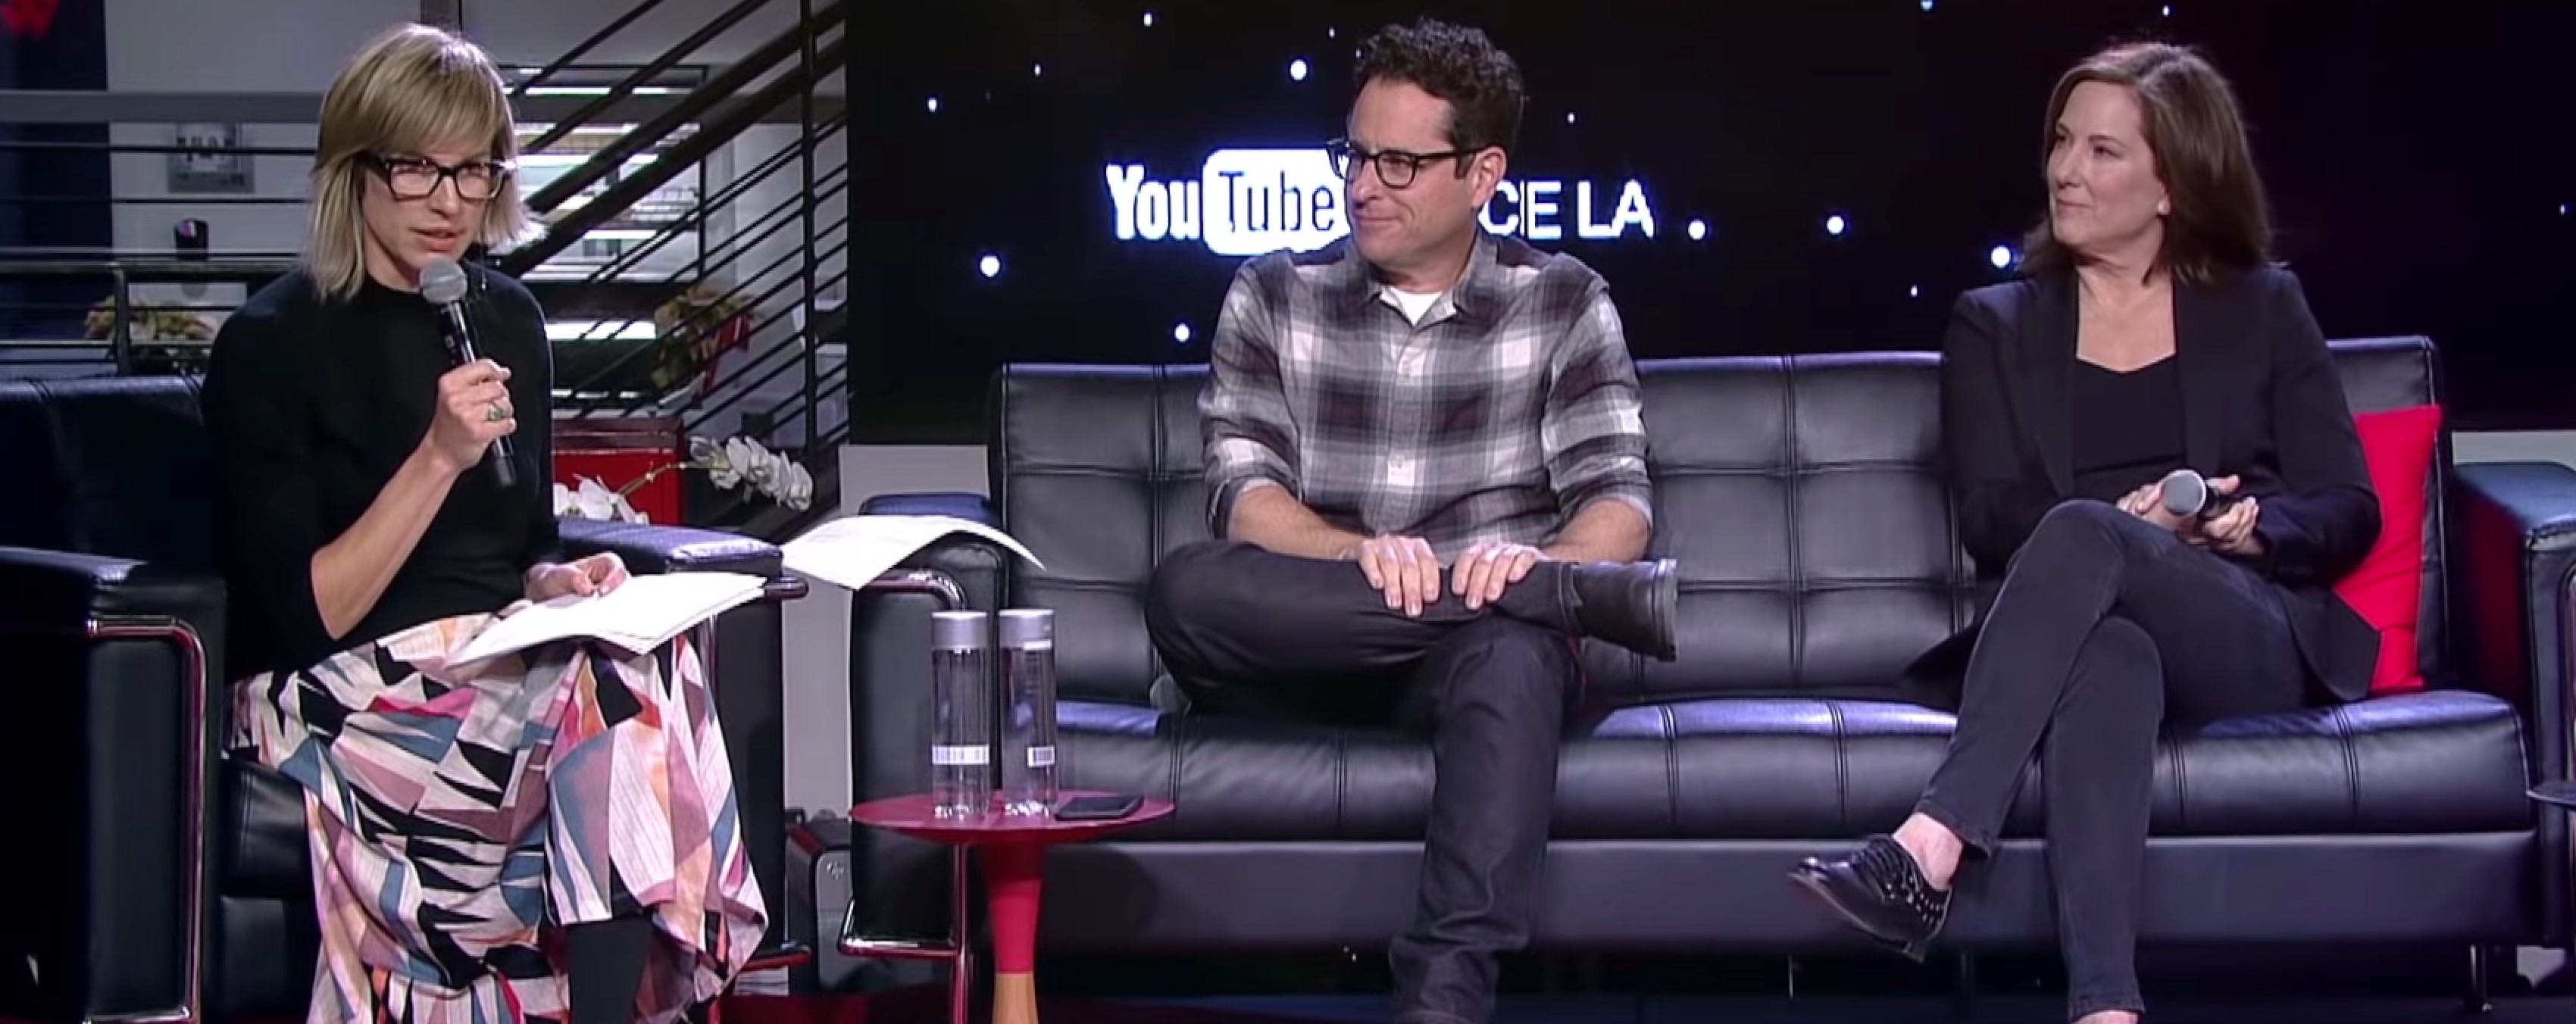 Watch: Star Wars: The Force Awakens Power Of Storytelling Q&A